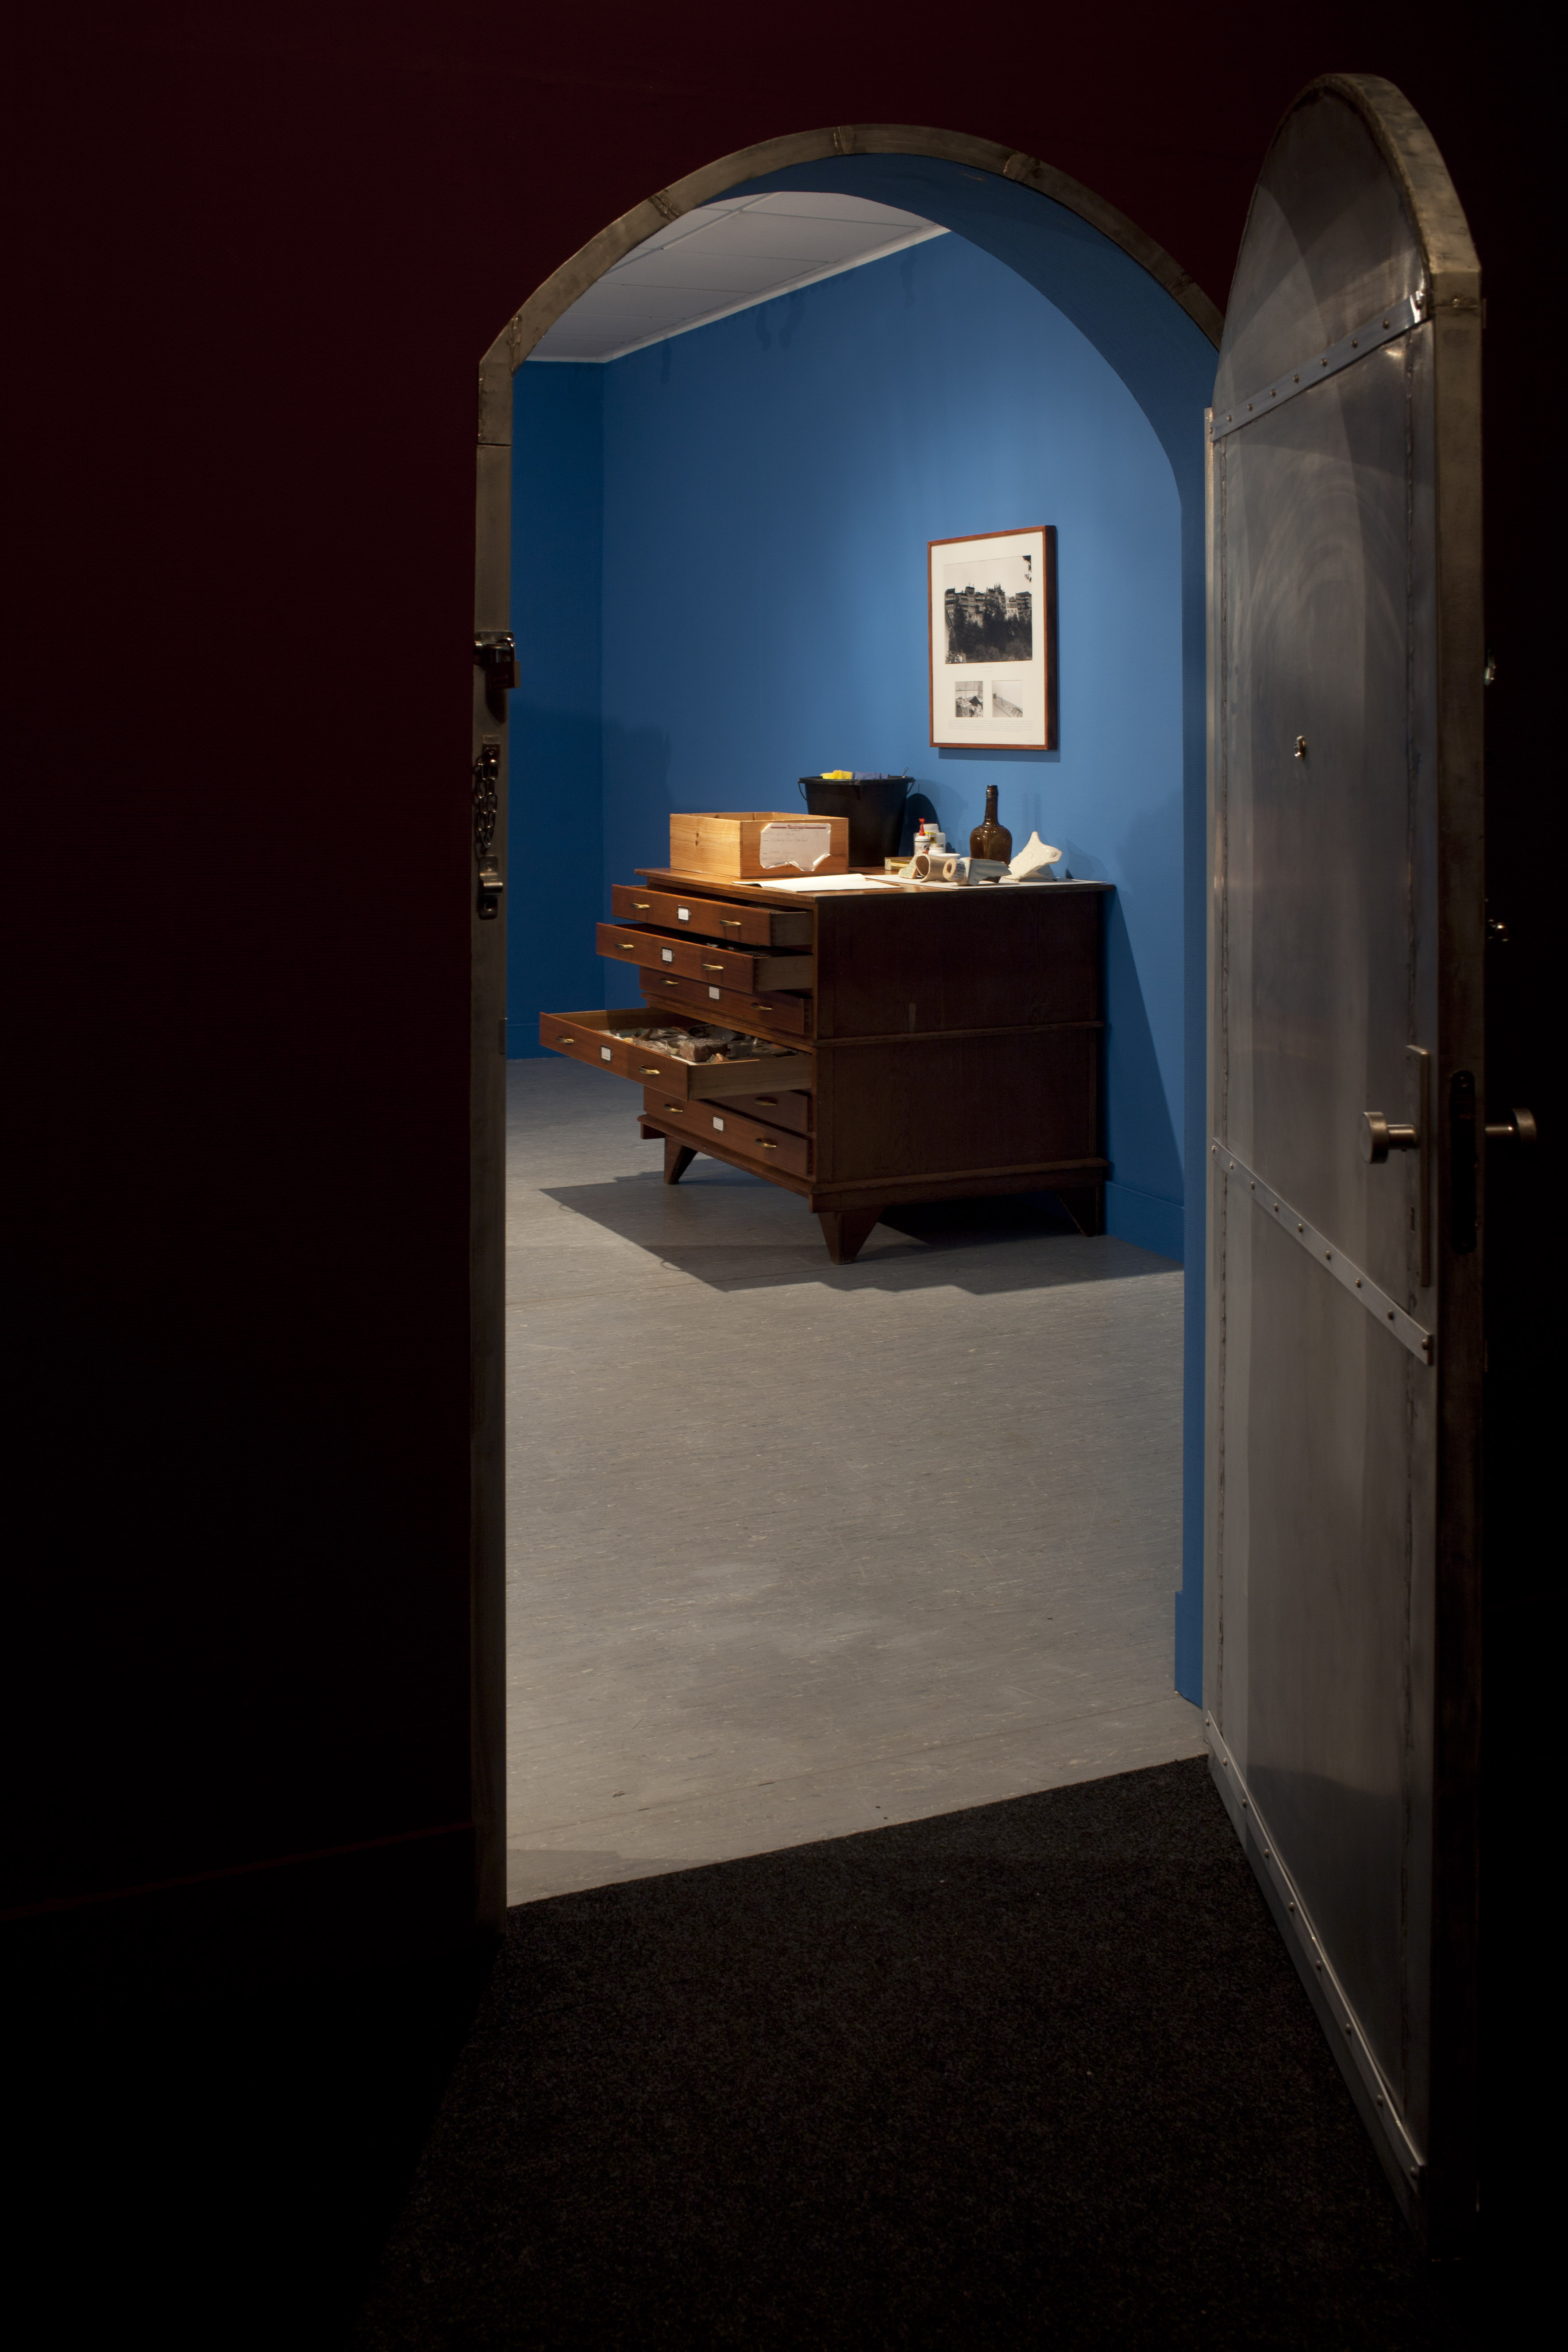 Mark Dion - The Macabre Treasury - Exhibition views, Museum Het Domein, Sittard, the Netherlands, 2013